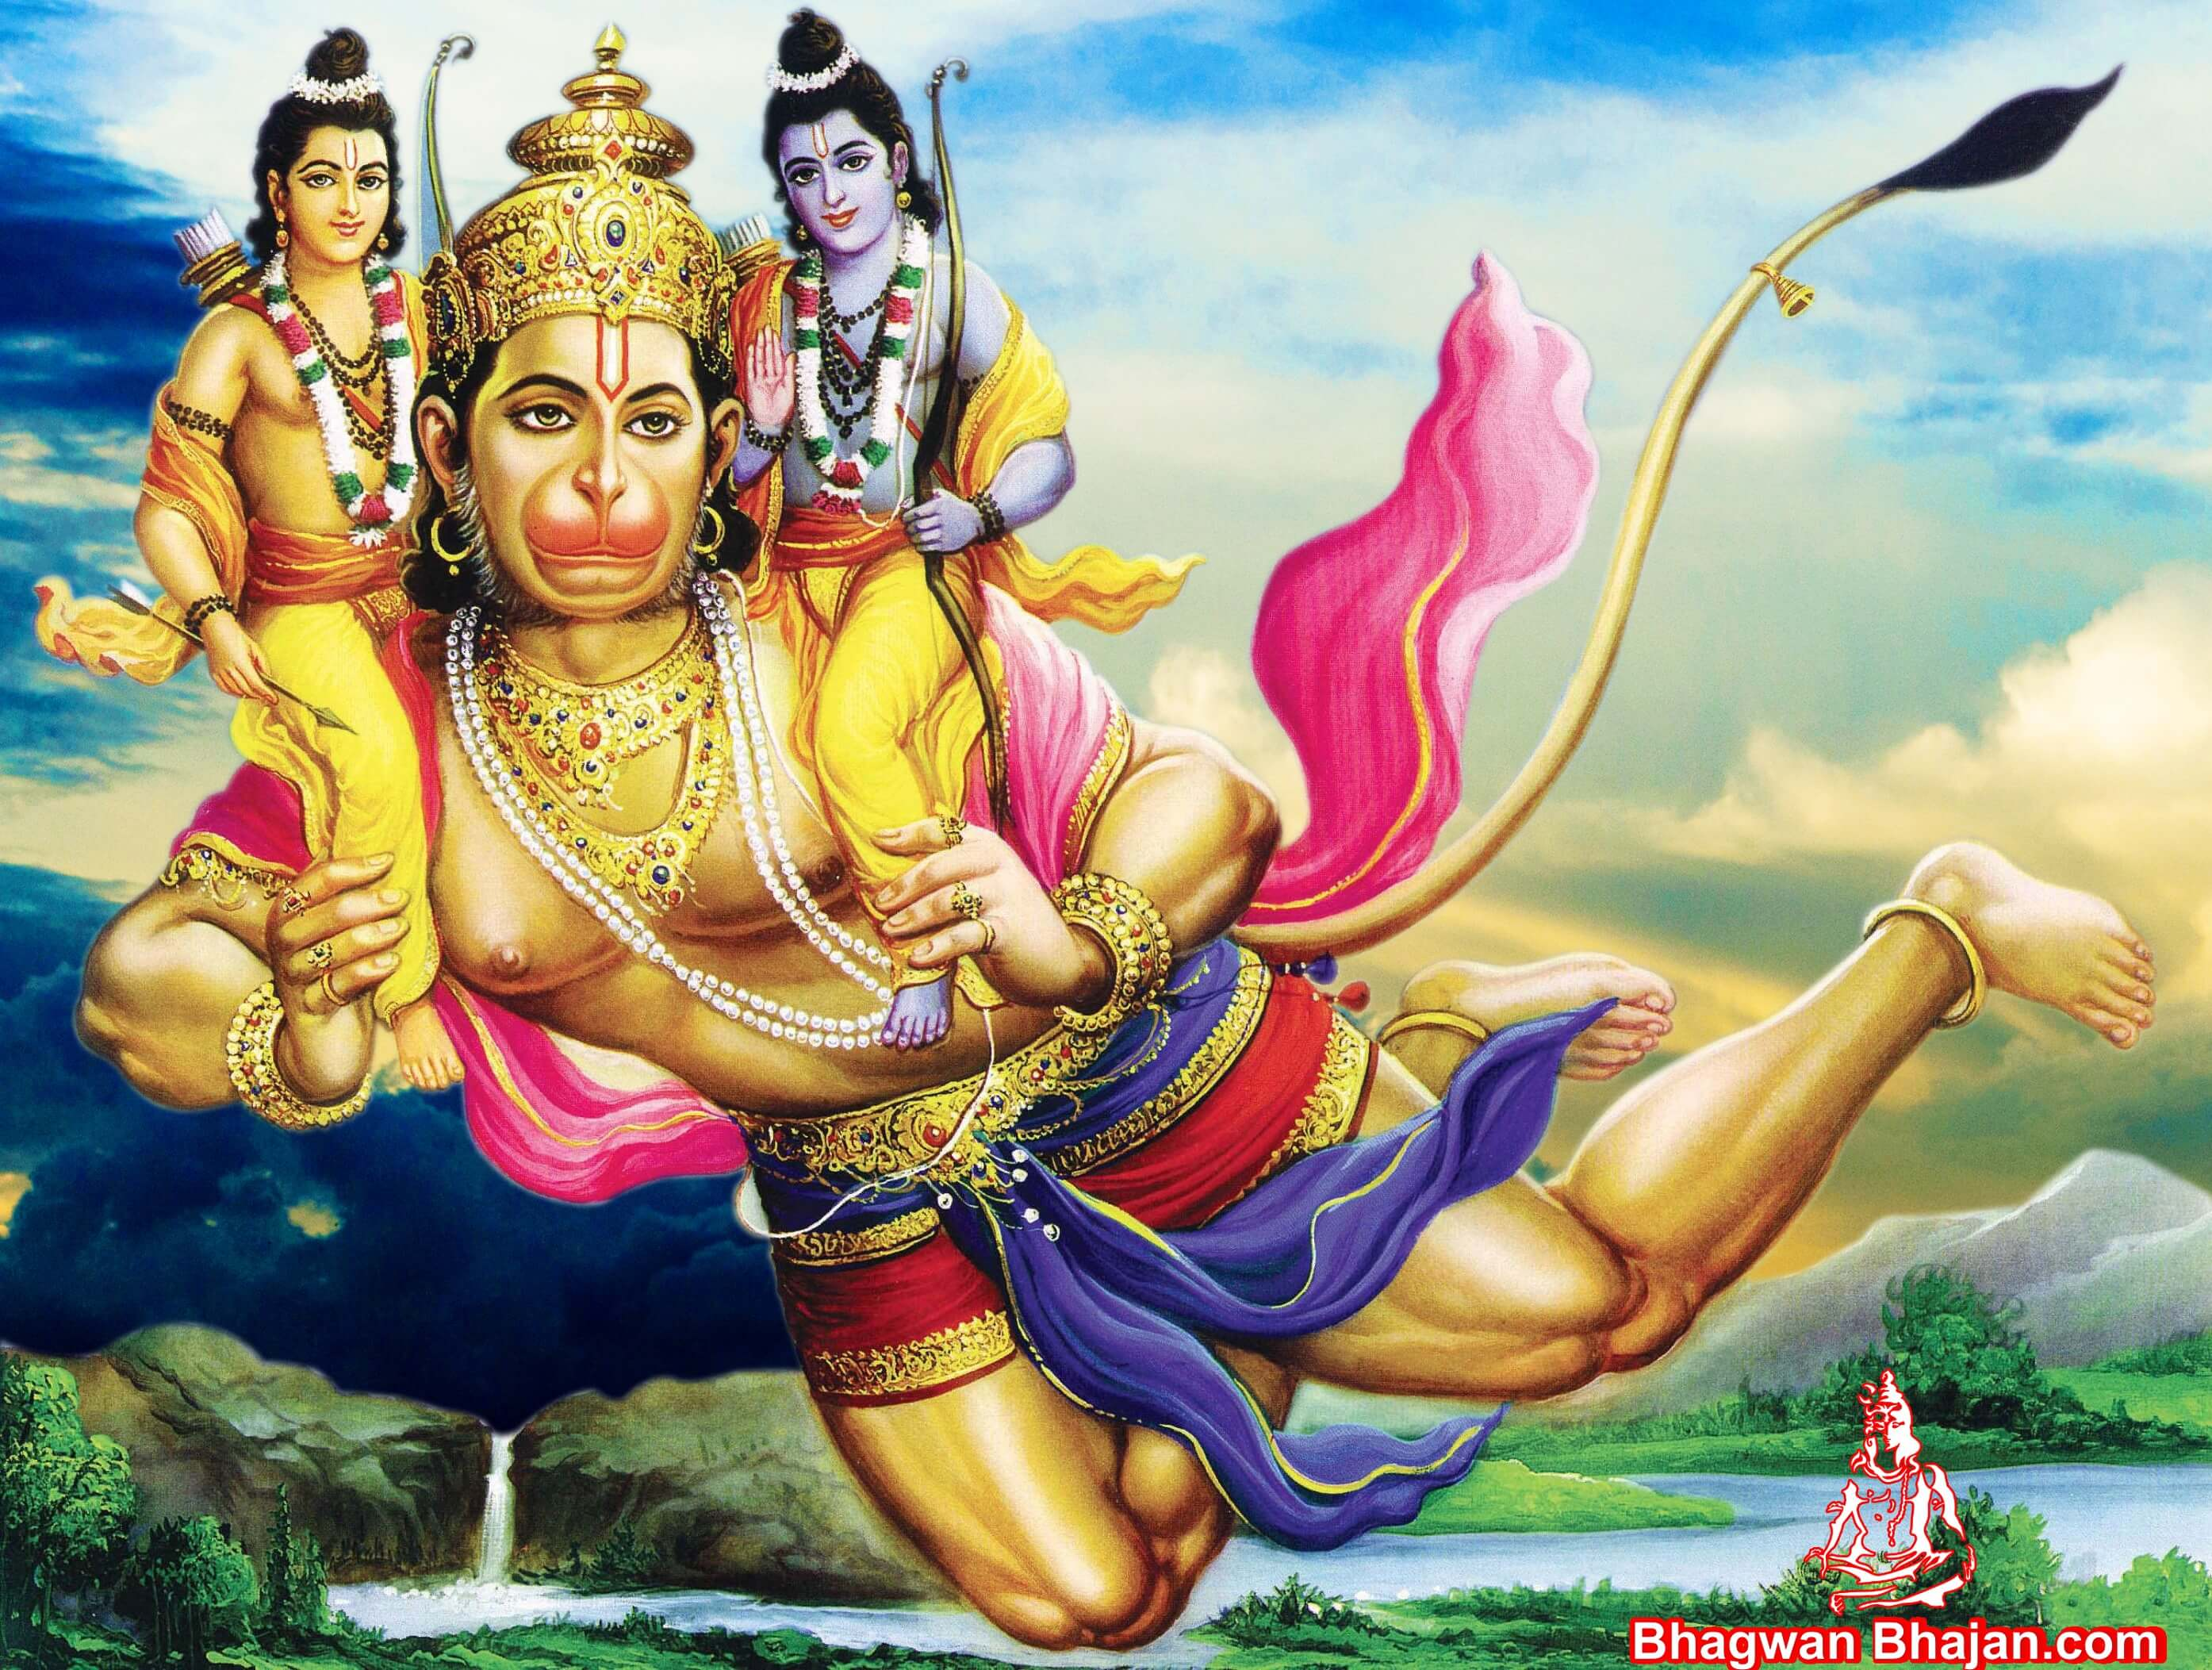 Bhagwan Hanuman Wallpaper Download Hanuman Ji Photos Images Bajrangbali Hd Images Sankatmochan Hanuman Wallpapers Images